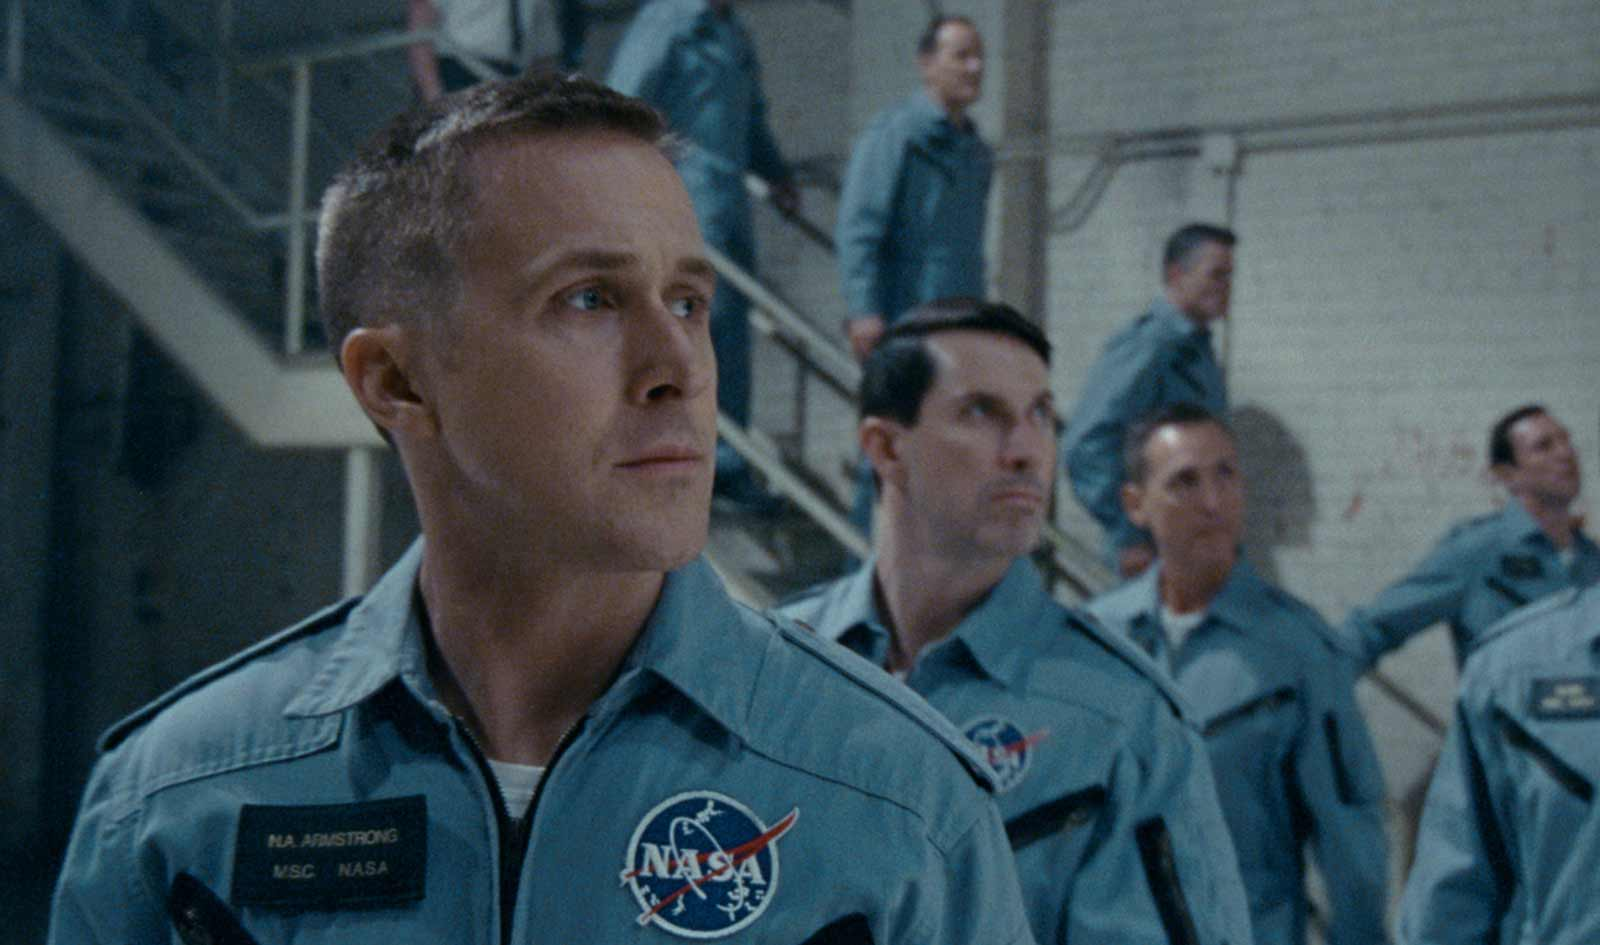 Ryan Gosling as Neil Armstrong in Damien Chazelle's First Man, 2018